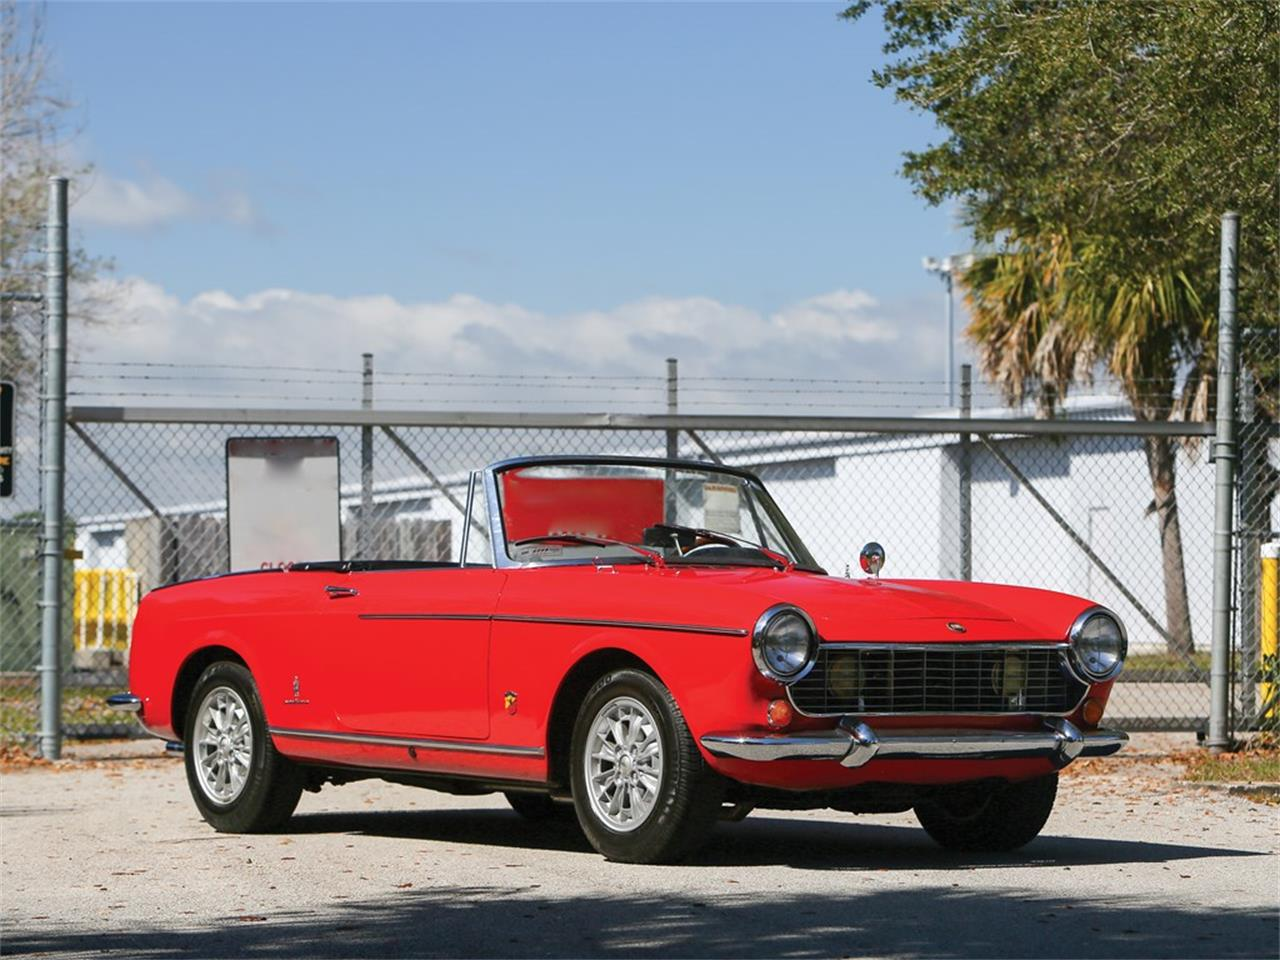 1965 Fiat Abarth 1500 for sale in Fort Lauderdale, FL